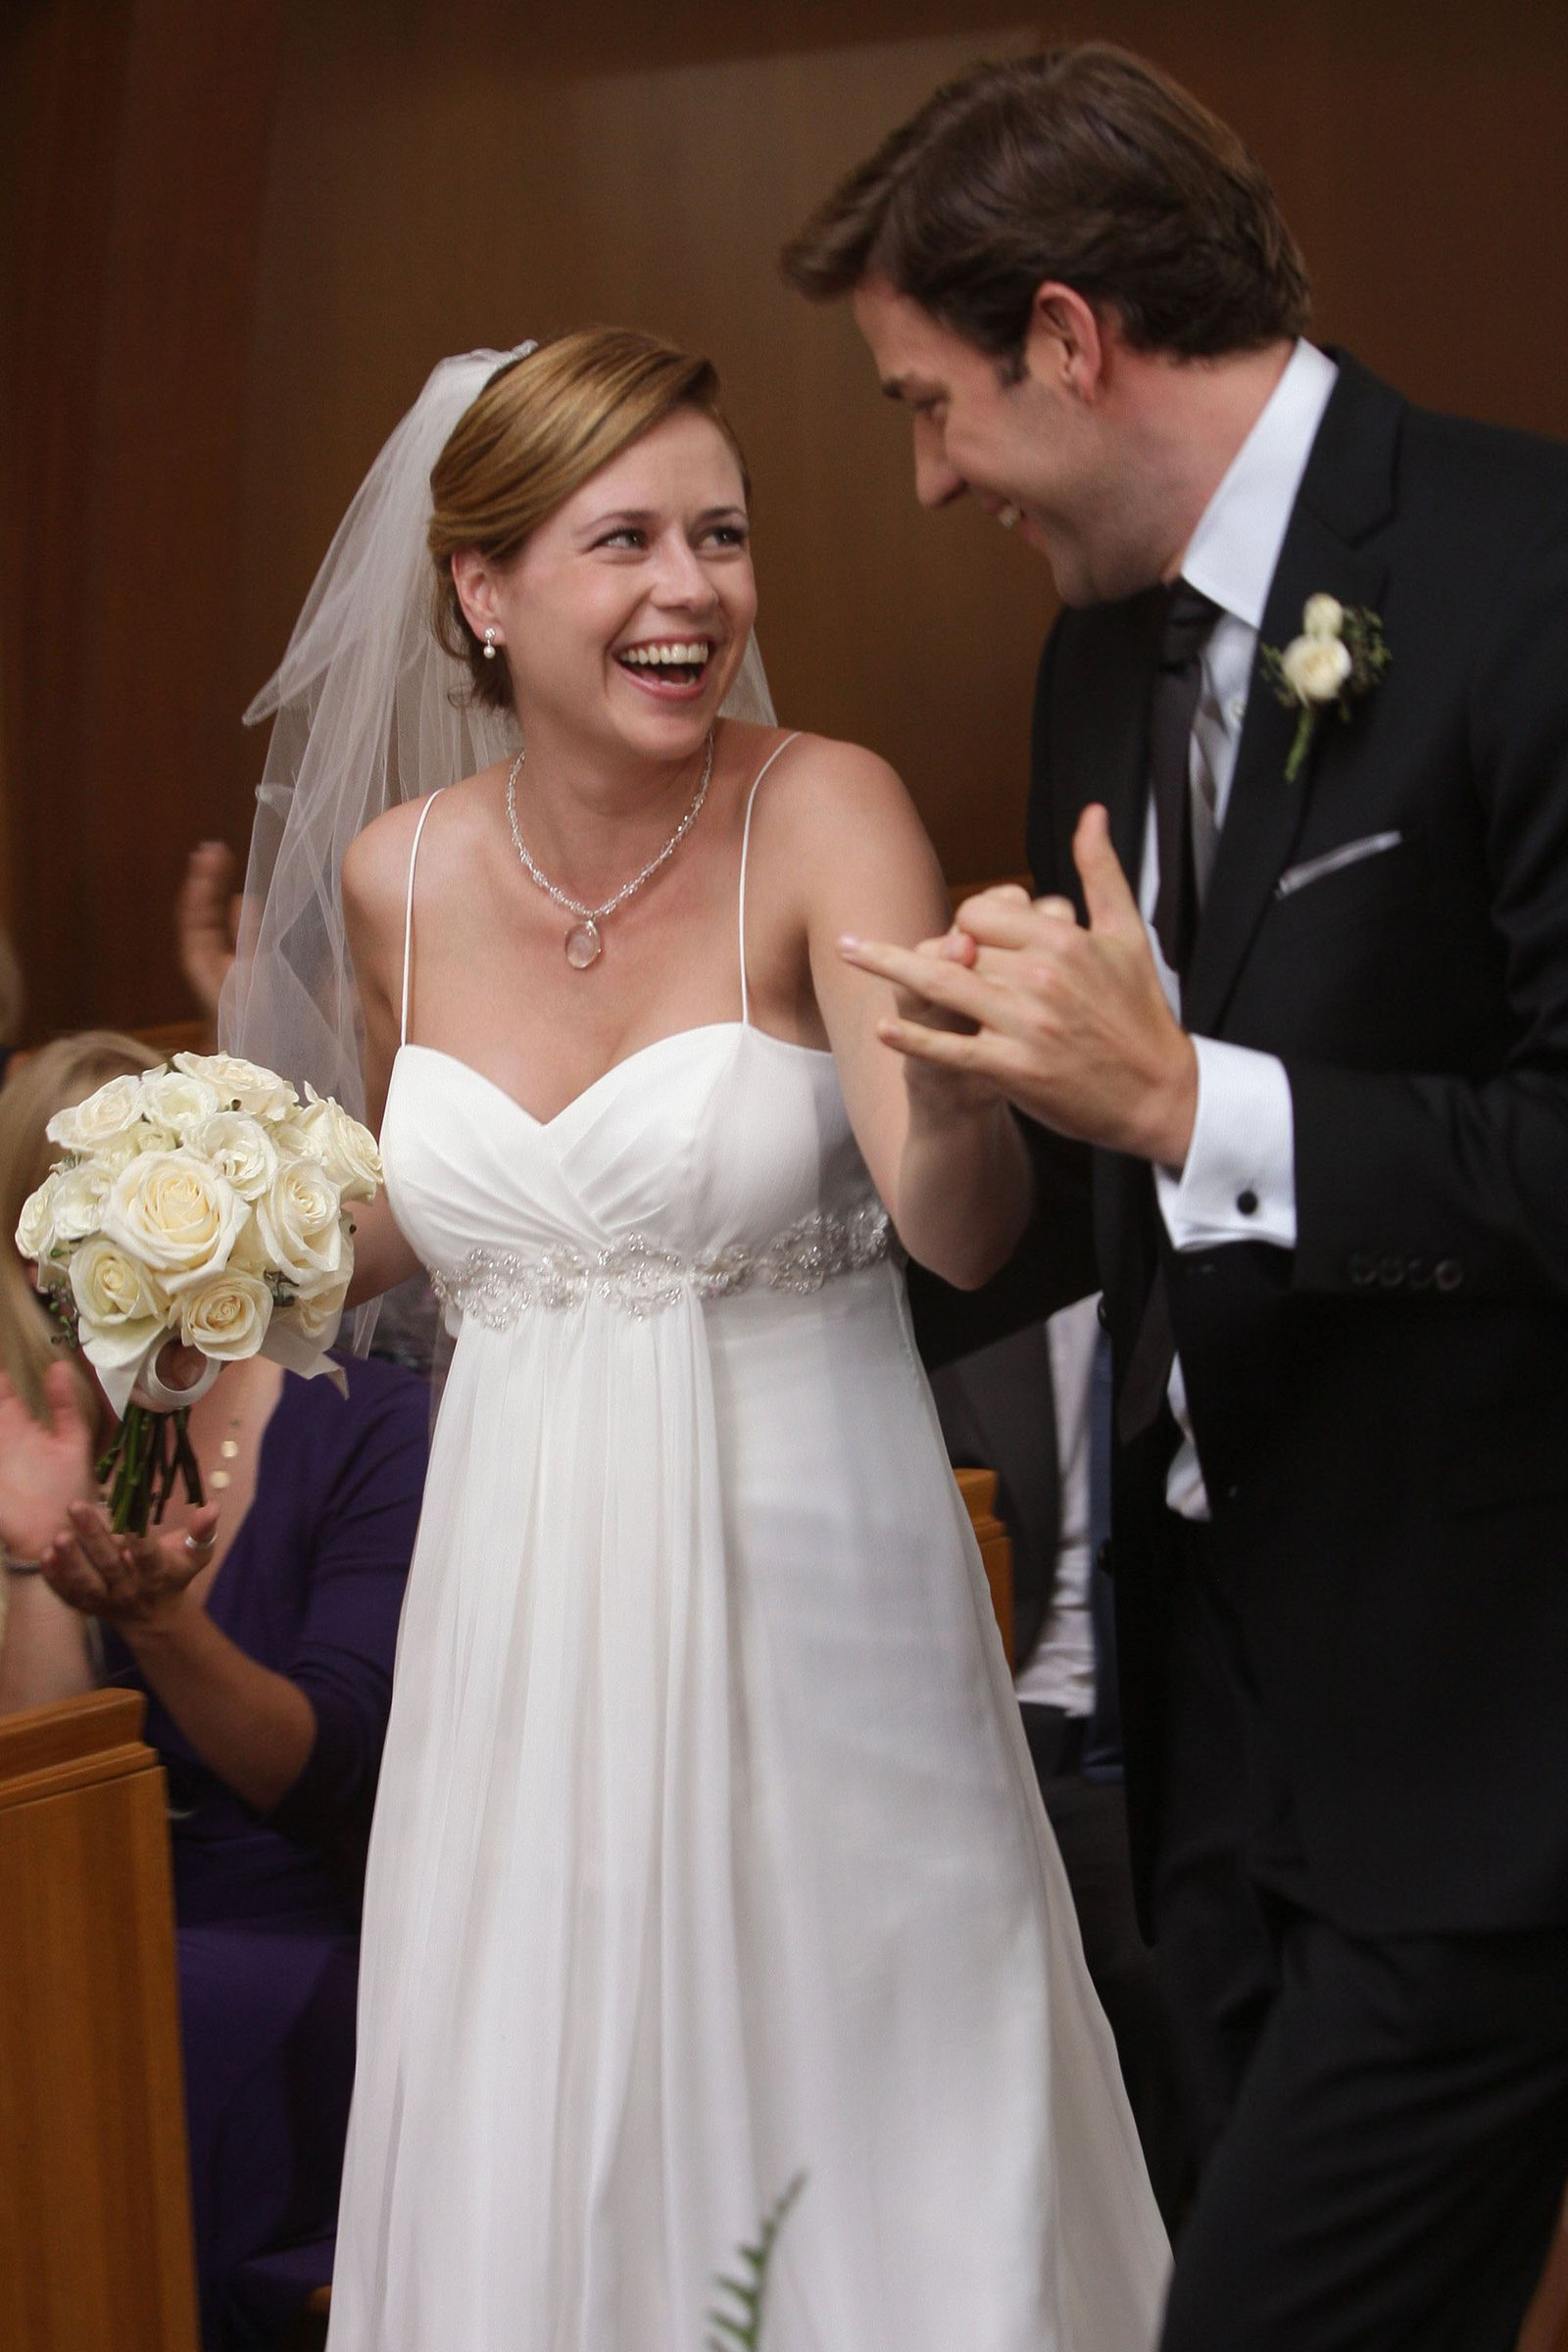 The Dreamiest Tv Wedding Dresses Of All Time The Office Wedding Tv Weddings Wedding Movies